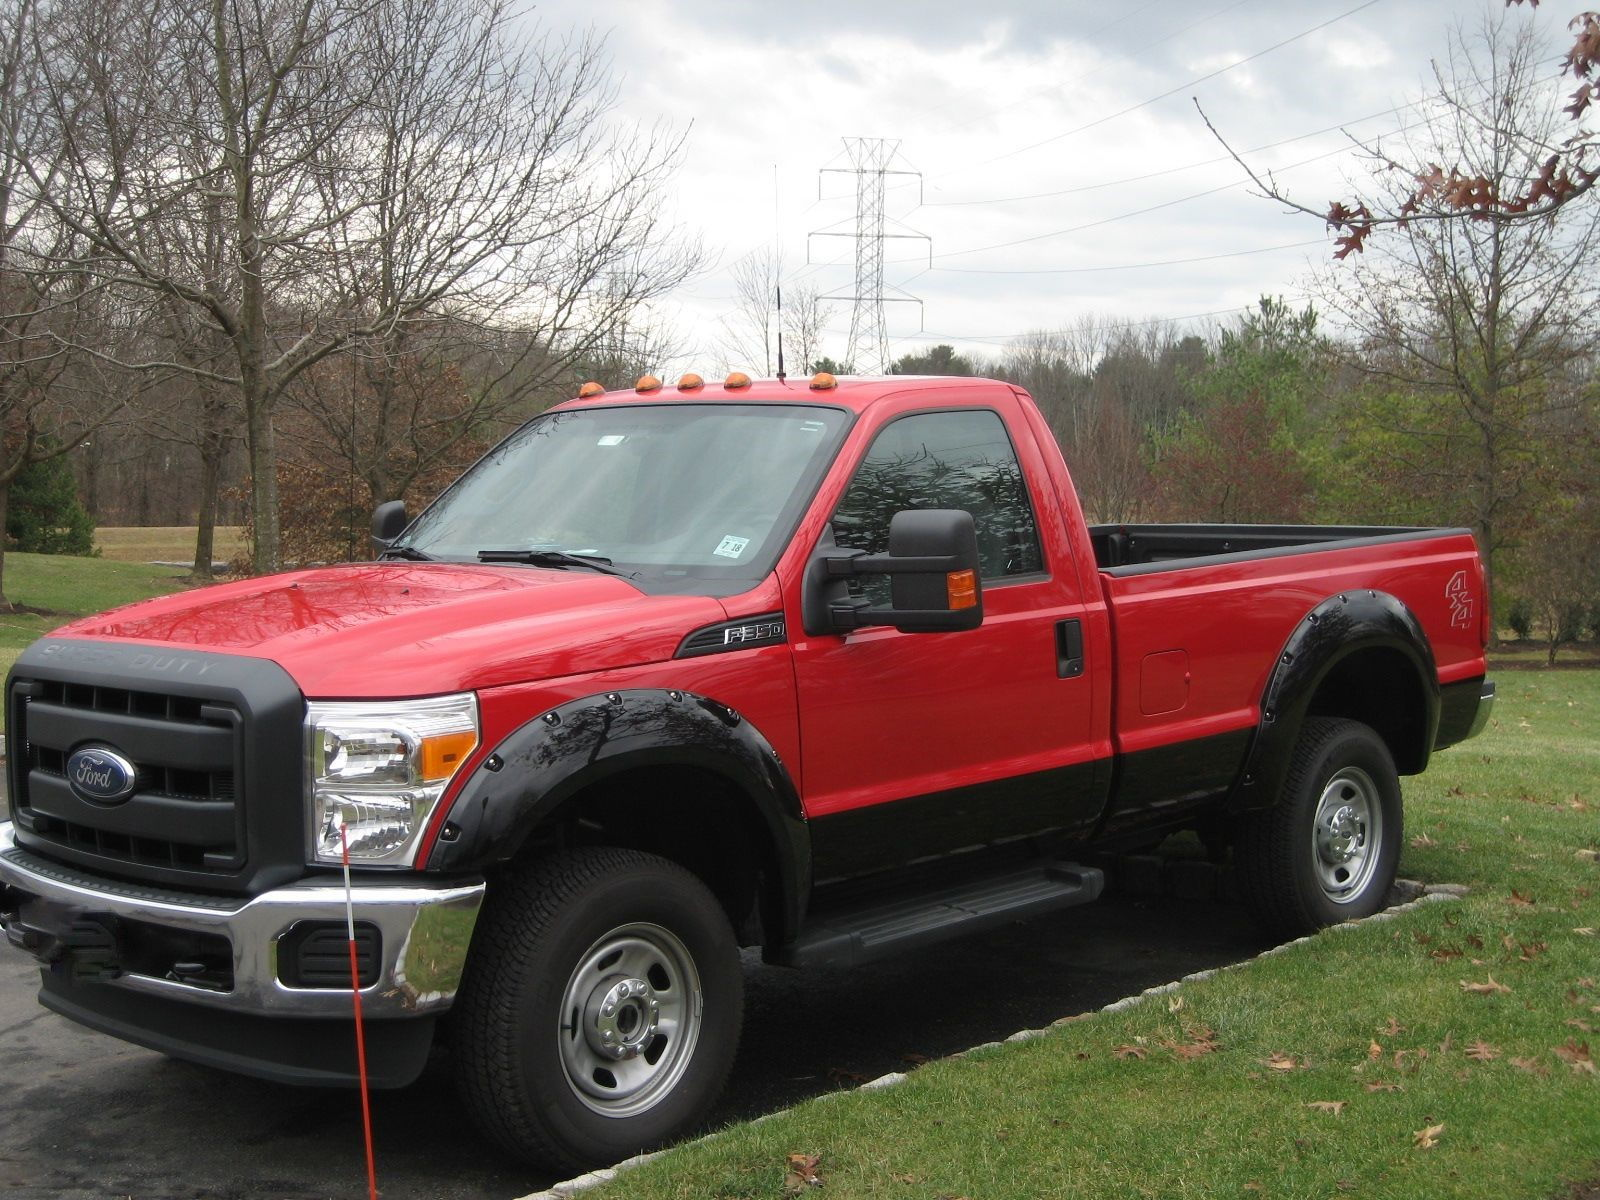 f350 single cab upgrades page 2 ford truck enthusiasts. Black Bedroom Furniture Sets. Home Design Ideas